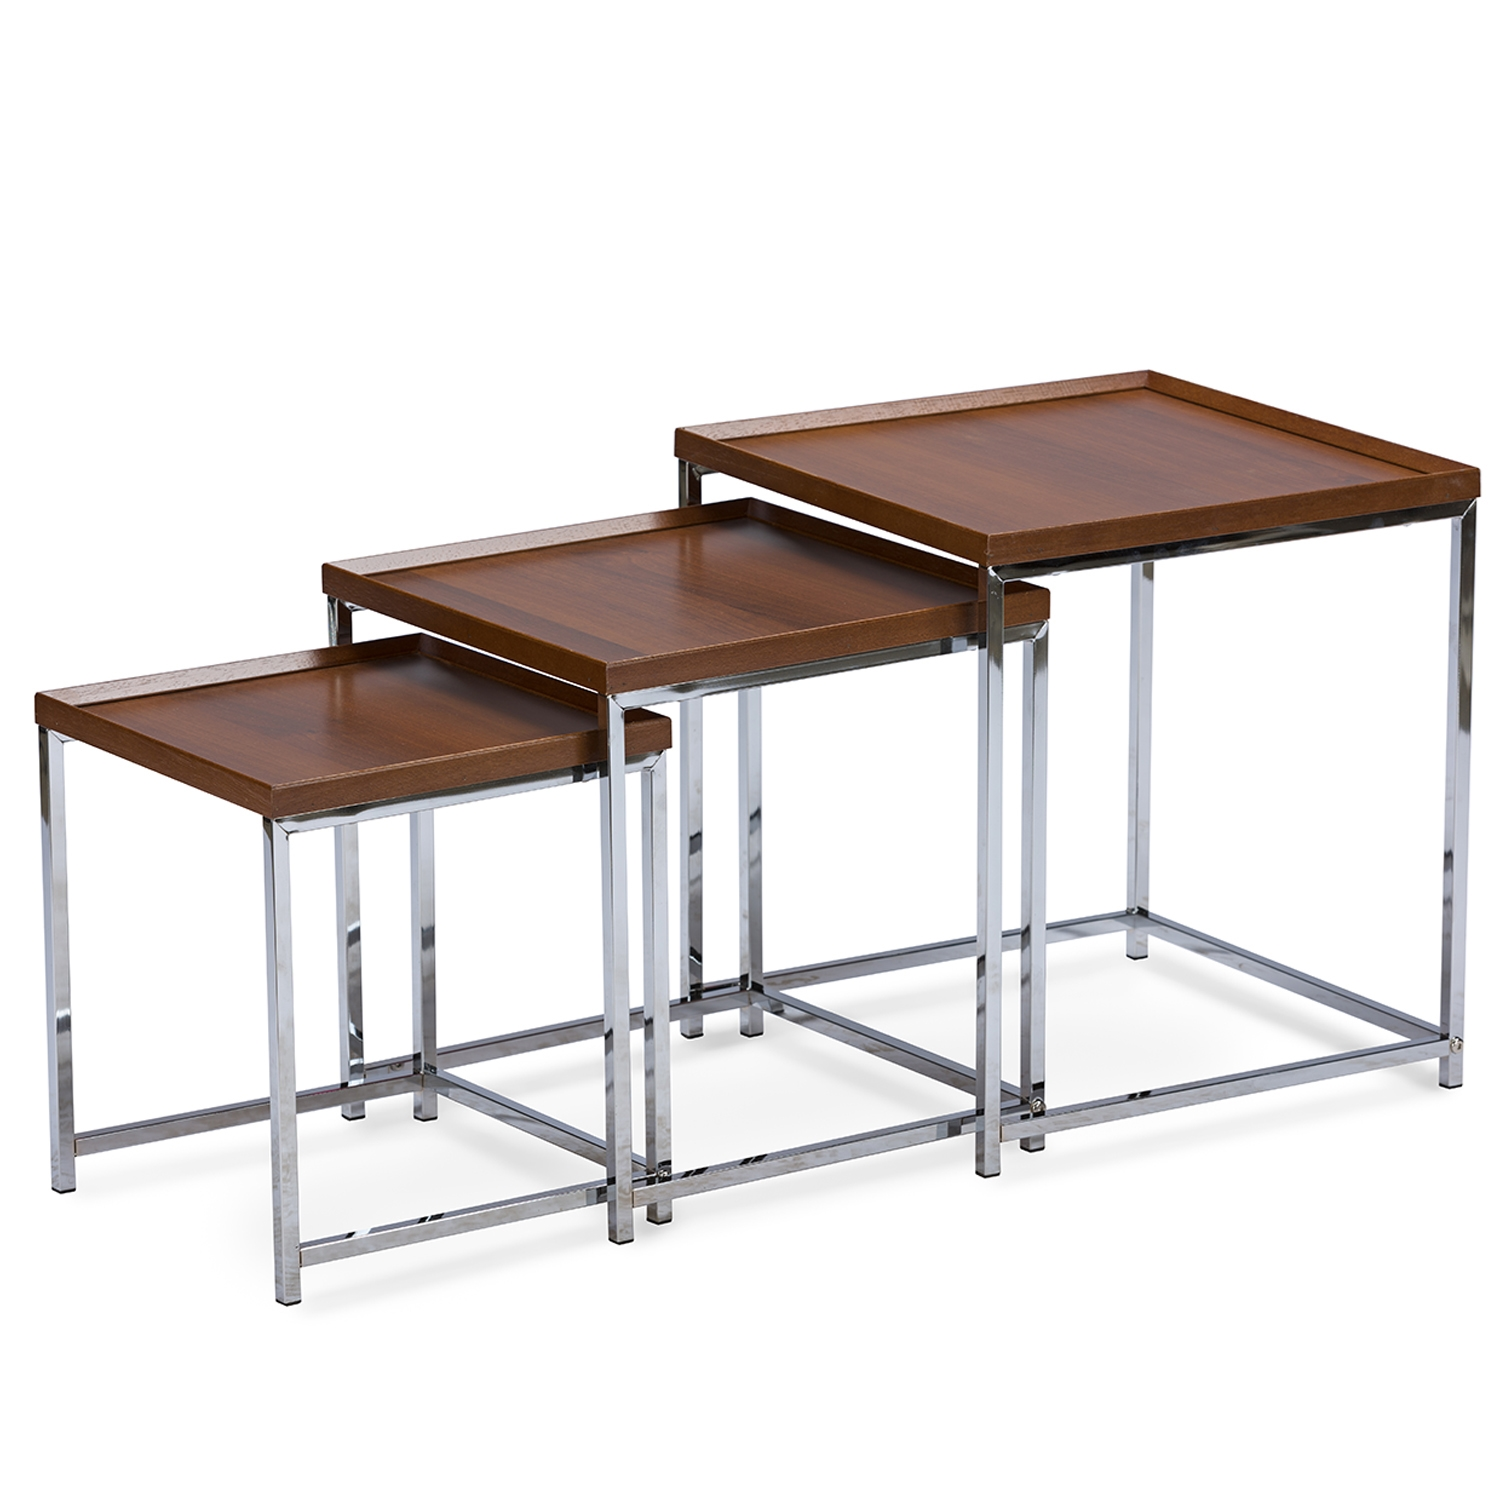 ... Baxton Studio Adelina 3 Piece Wood Top Chrome Base Nesting Table Set    IEAking  ...